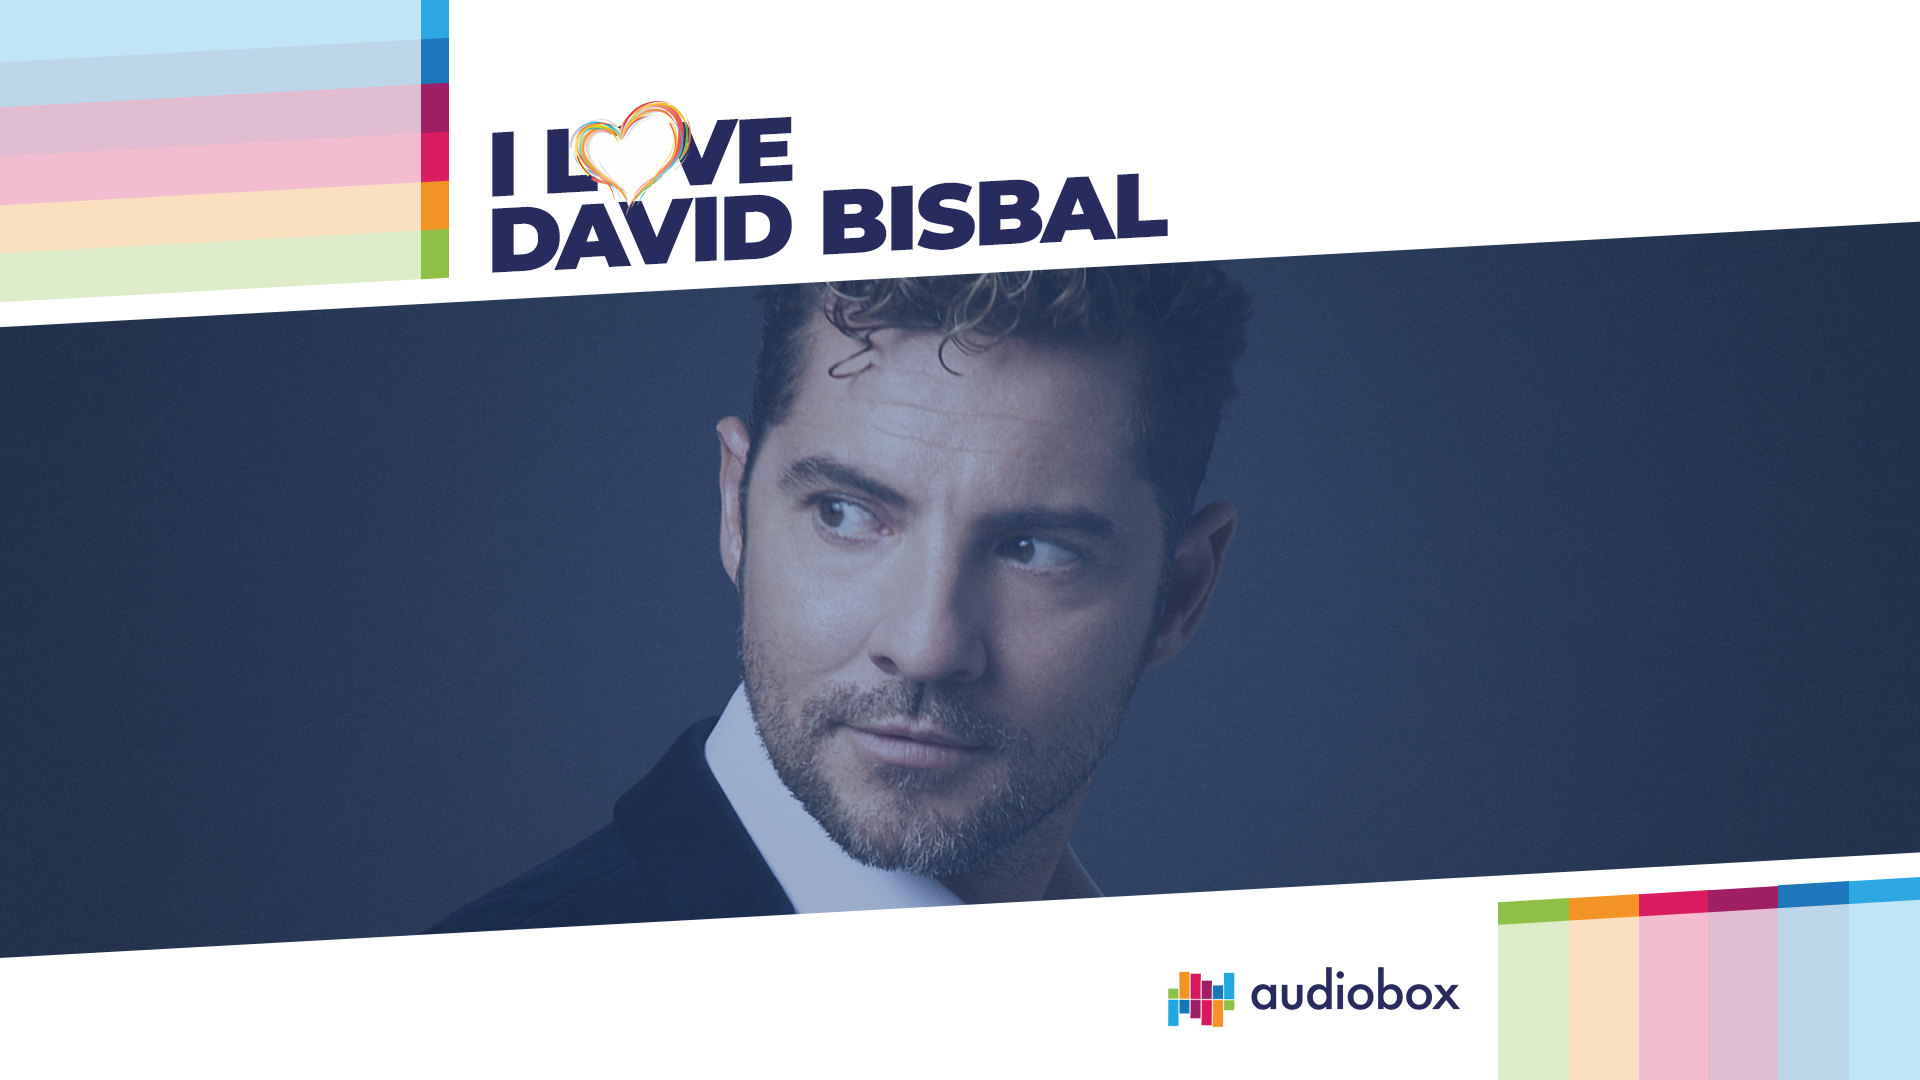 I LOVE DAVID BISBAL